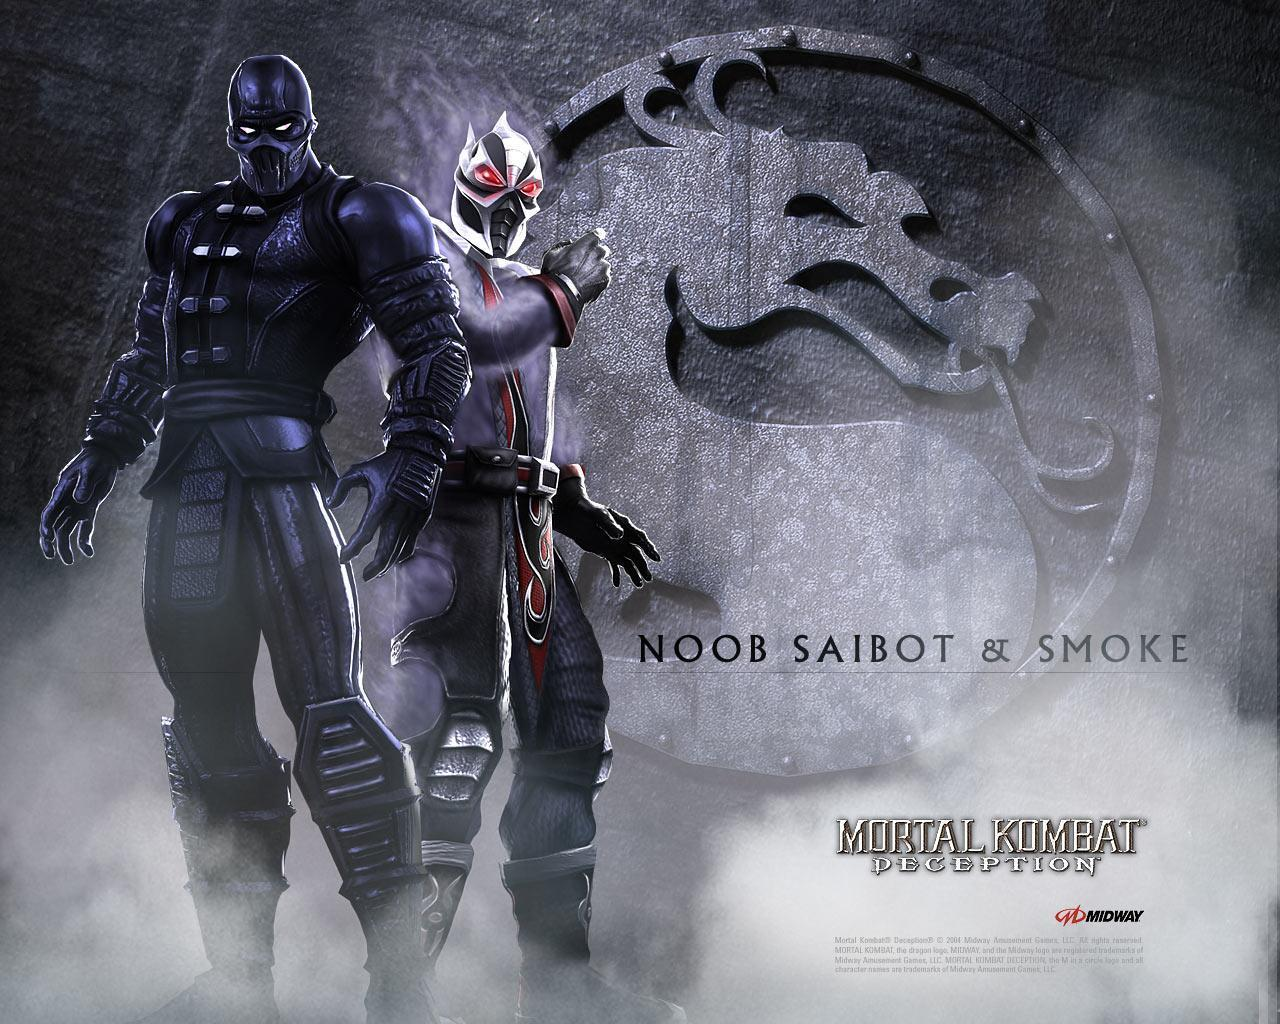 Noob Saibot & Smoke